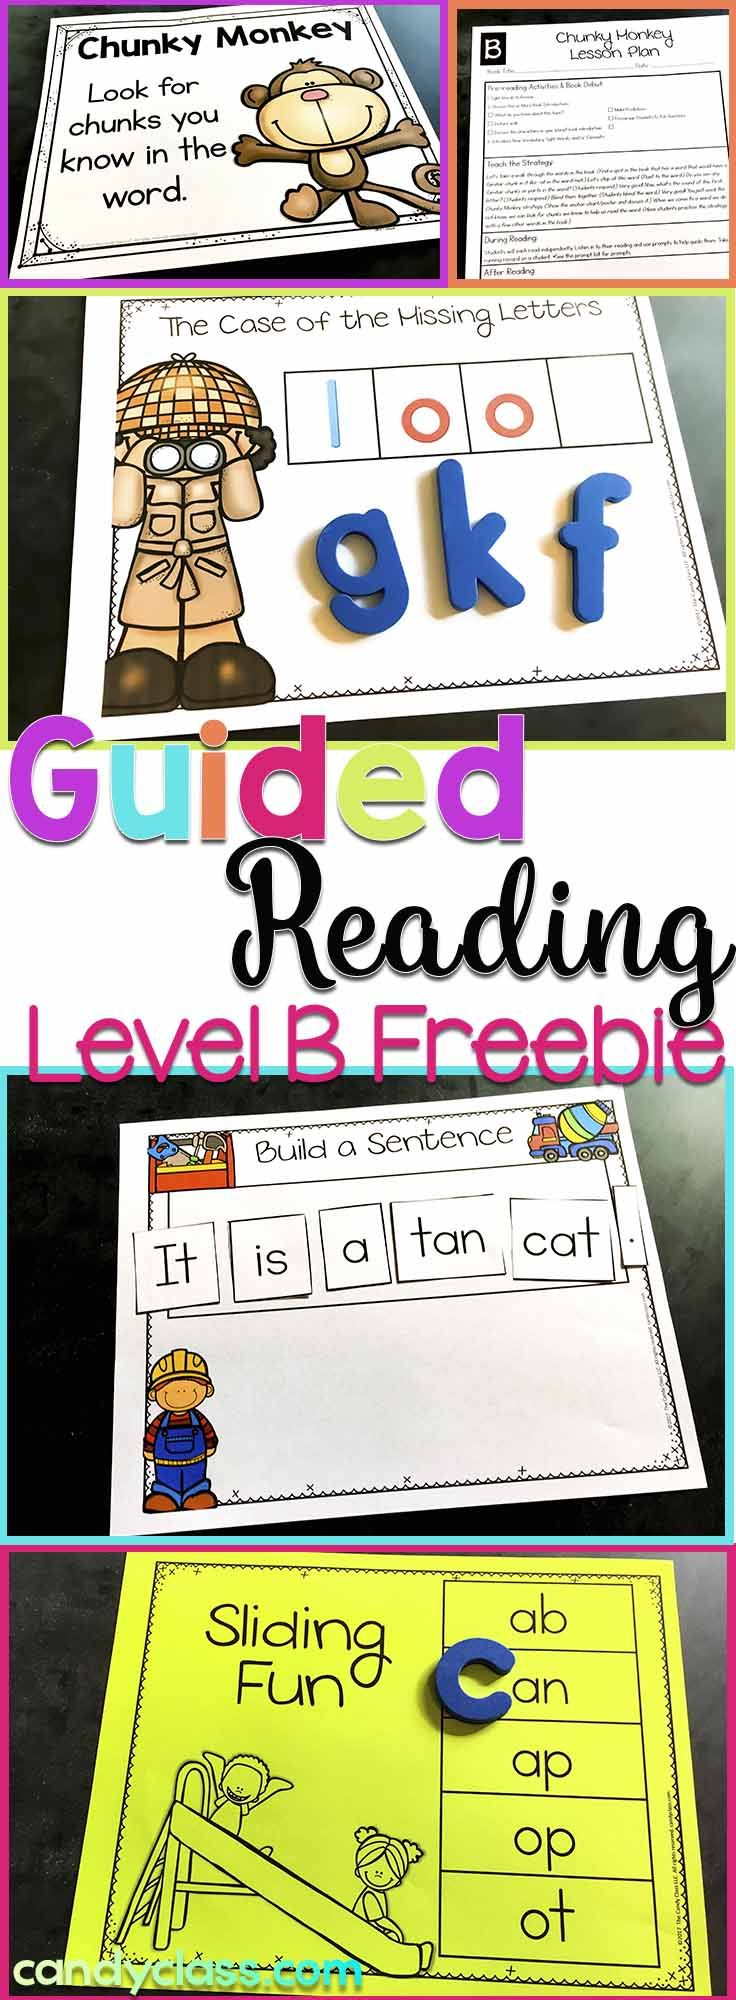 Would you like a free guided reading sampler of level B? Here you go! This freebie includes a lesson plan, reading strategy poster and anchor chart, sight word activity, word work activities, dictated sentence, and assessment.